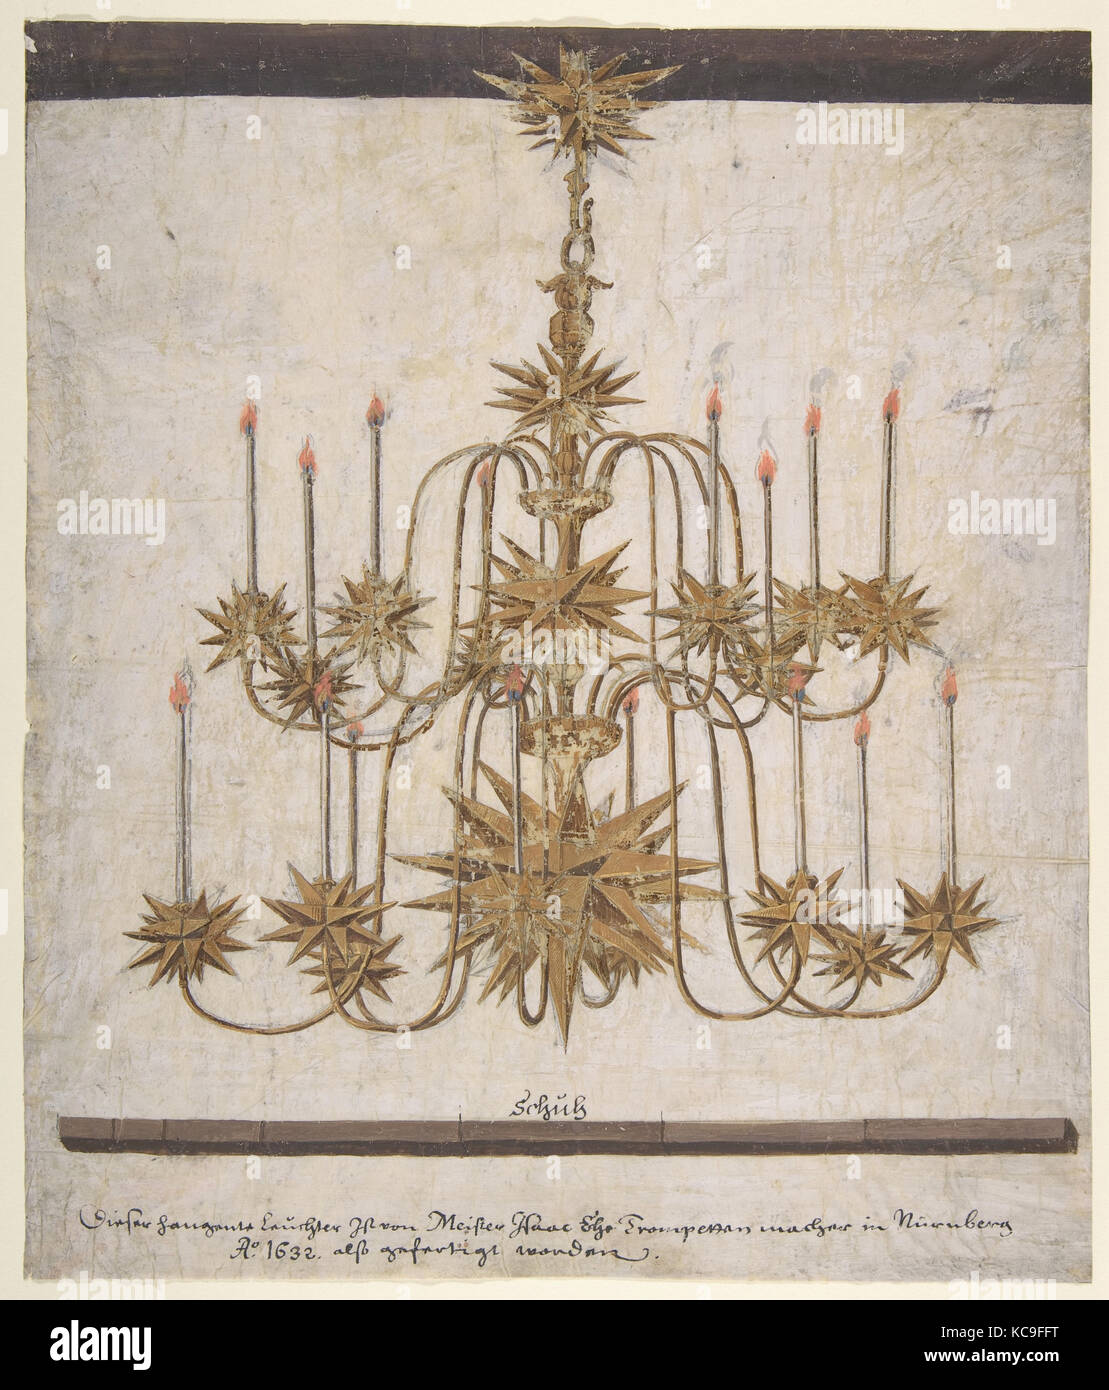 Design for a Chandelier with Sixteen Candles, Isaak Ehe, 1632 - Stock Image